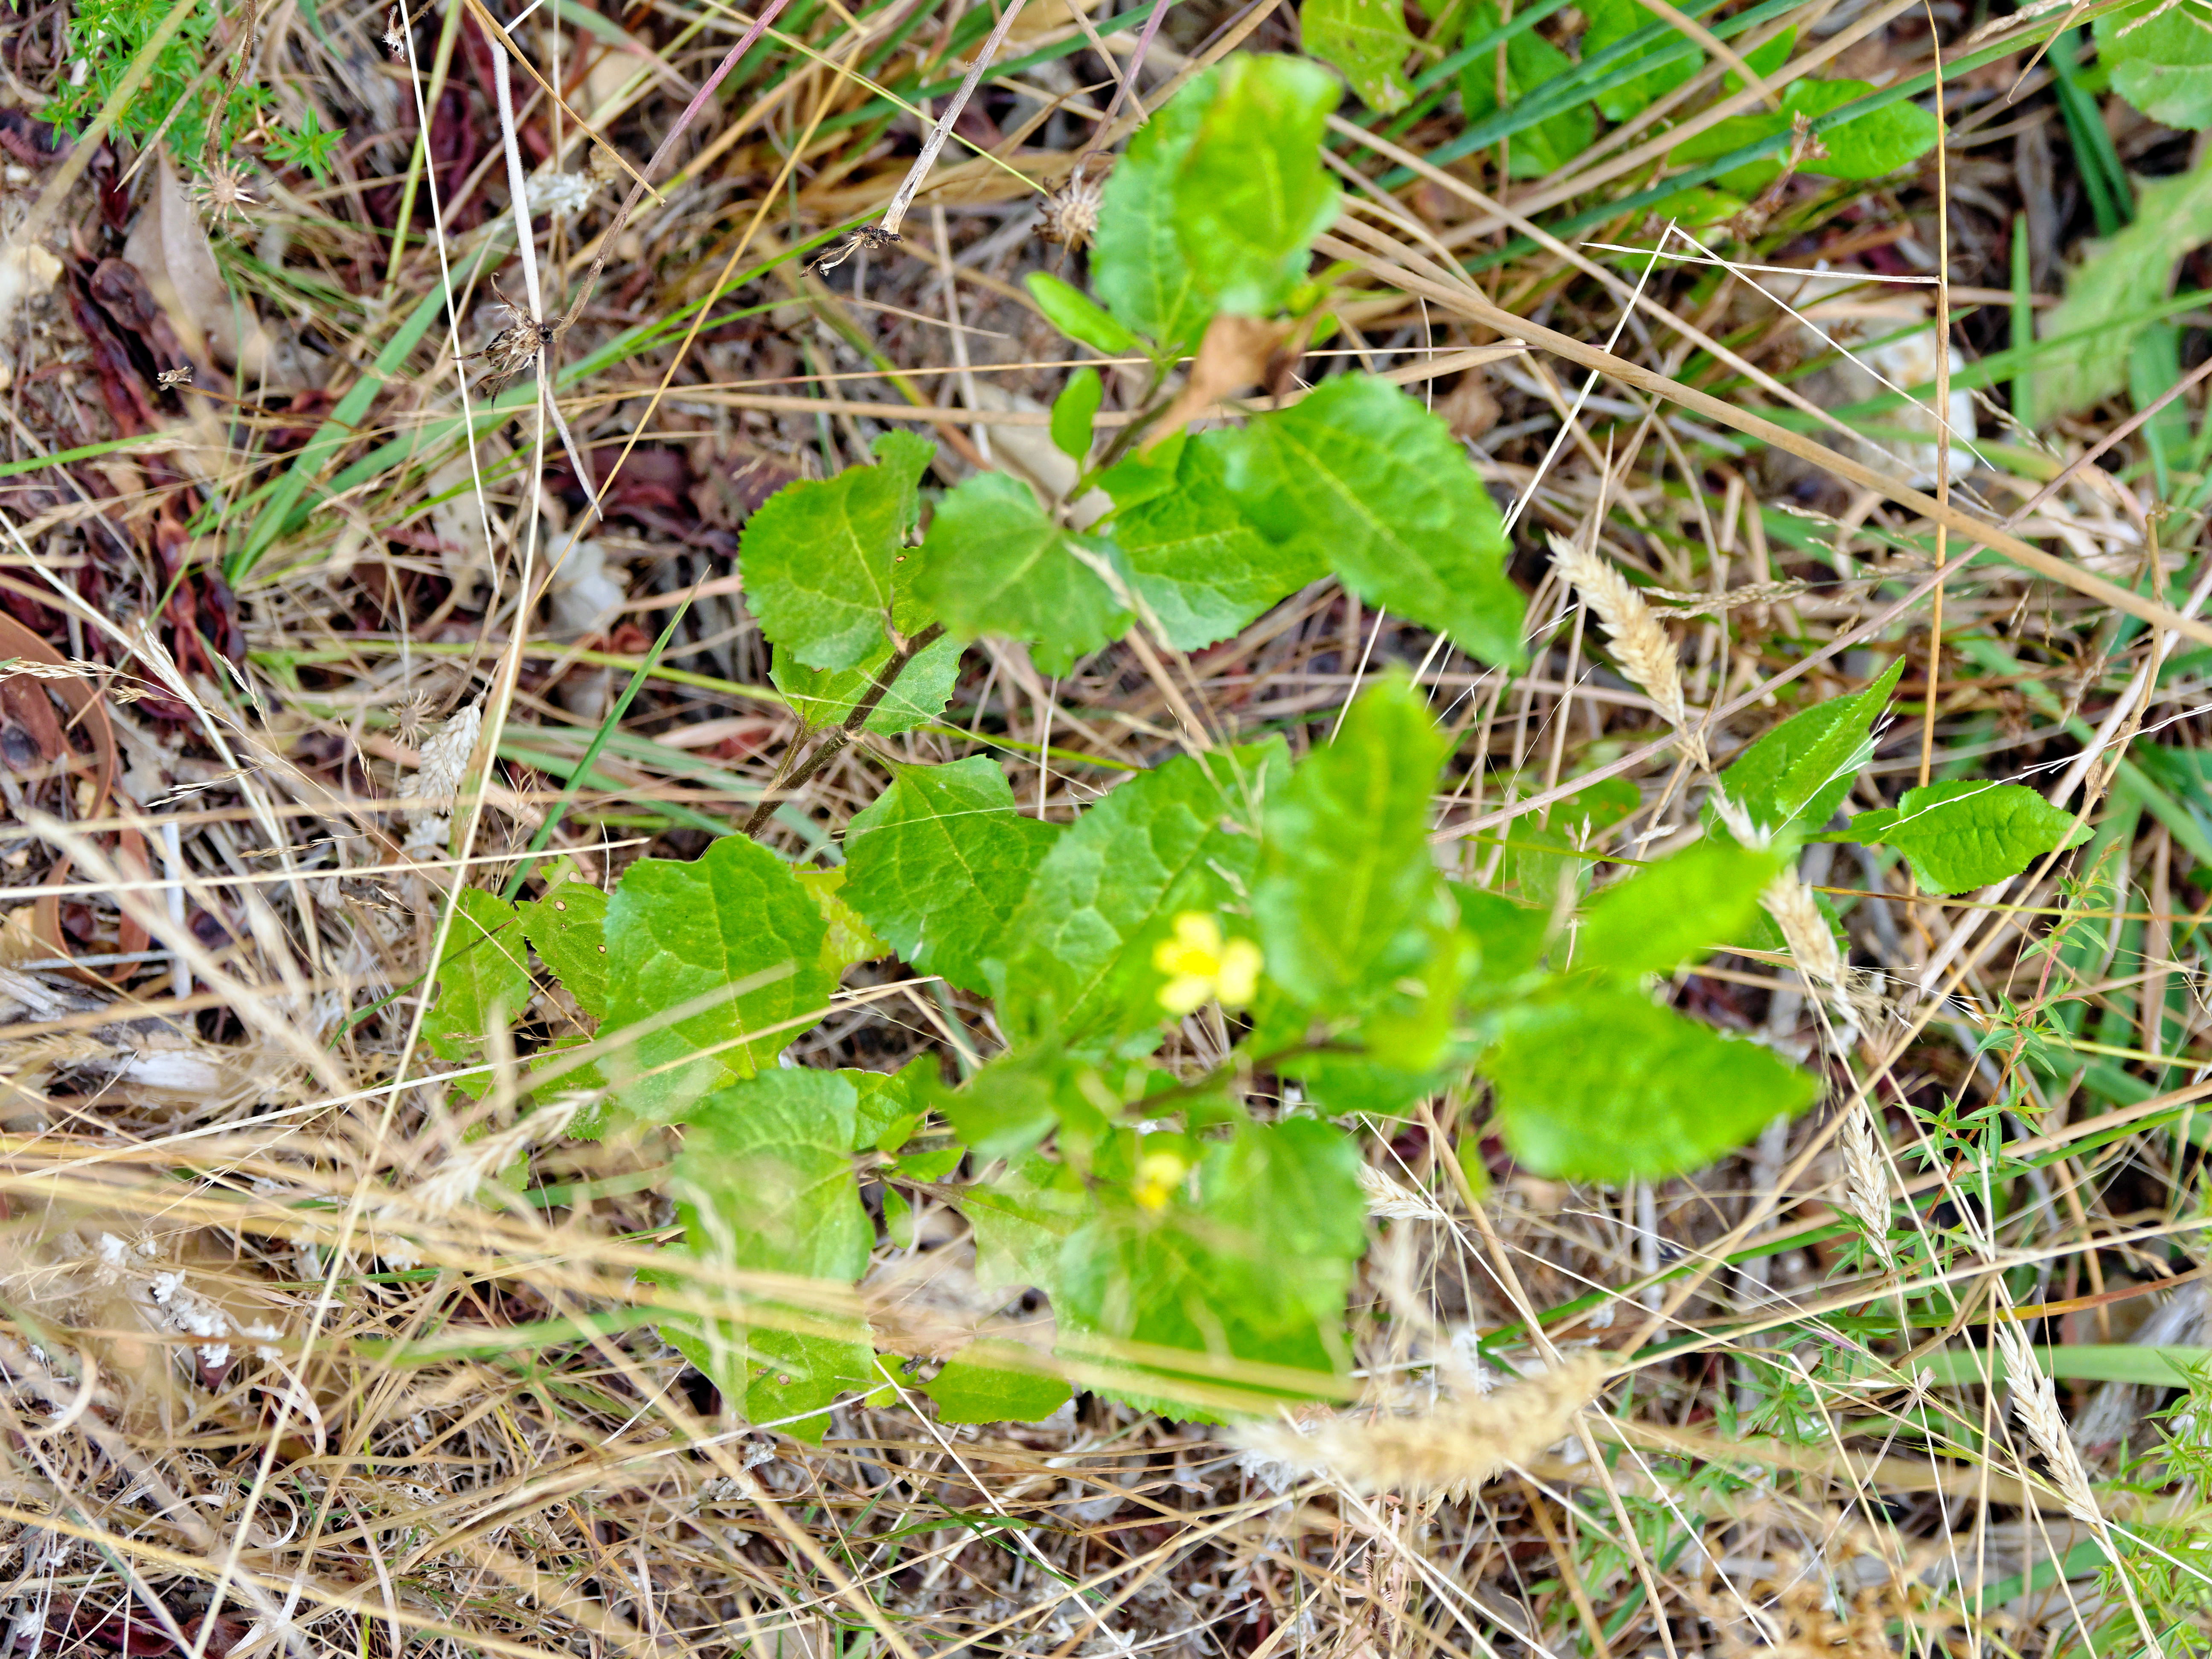 This should be Wildflower-2.jpeg.  Is it missing?